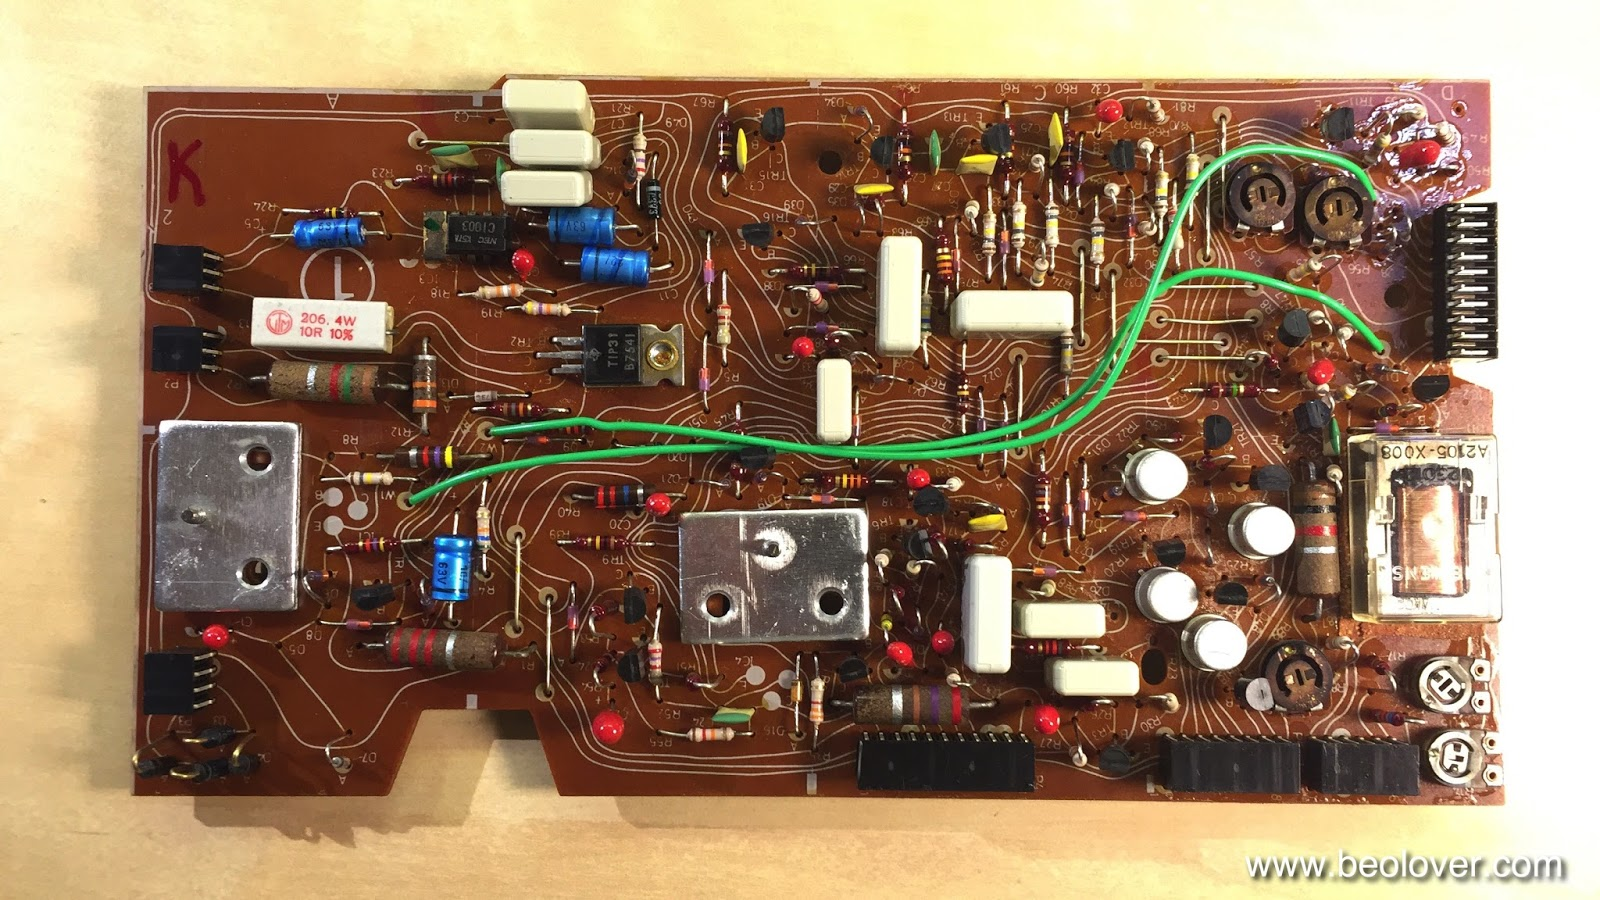 Beolover Beogram 4002 5513 Replacing The Electrolytic Capacitors Dc Motor Controller Using Transistor Tip31 Red And Blue Parts Are That Need To Be Replaced This Shows Control Section In Detail